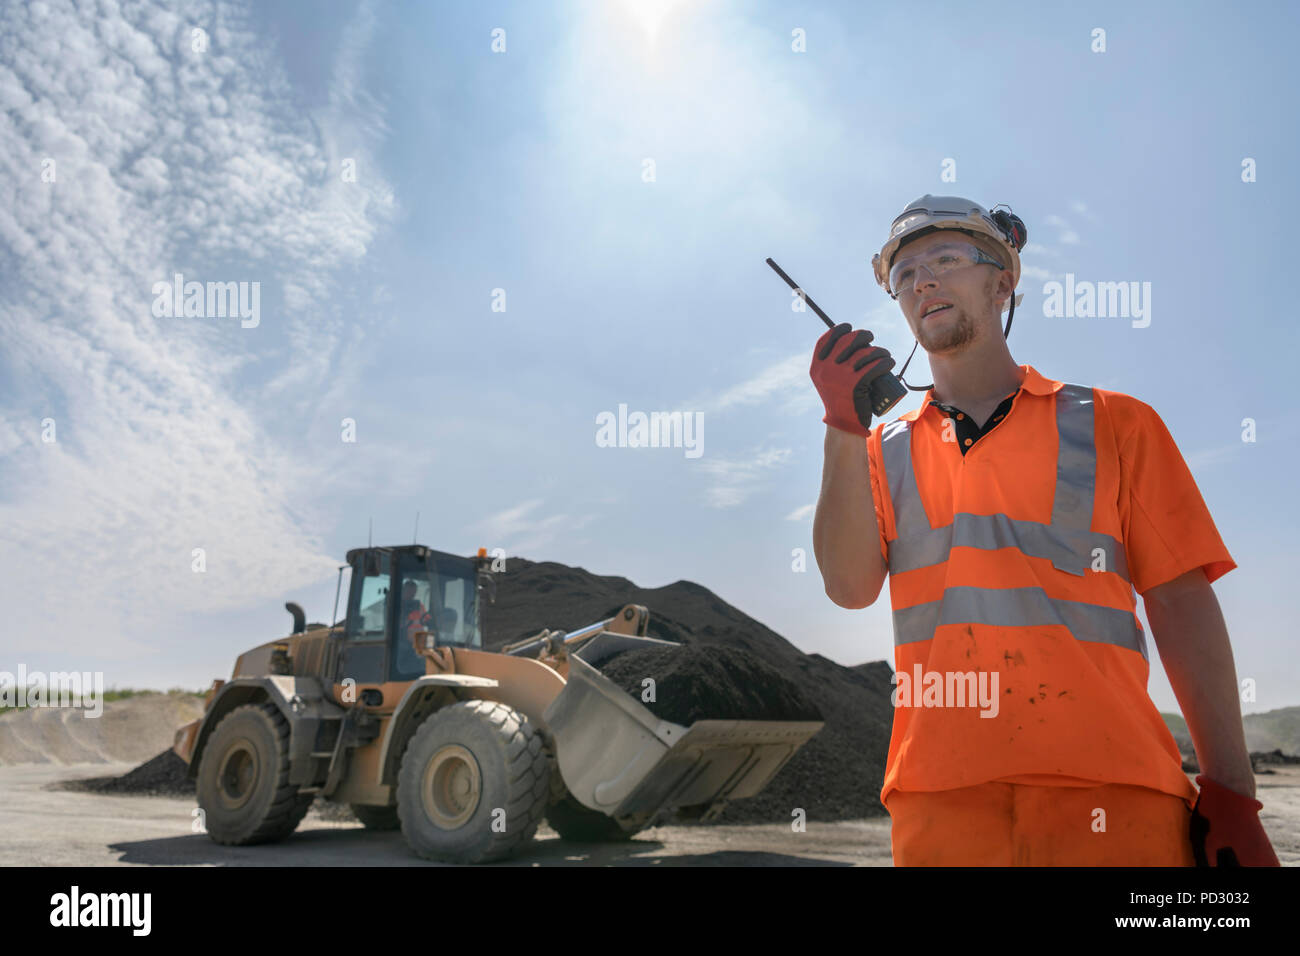 Worker communicating via walkie talkie in front of digger in concrete recycling site - Stock Image